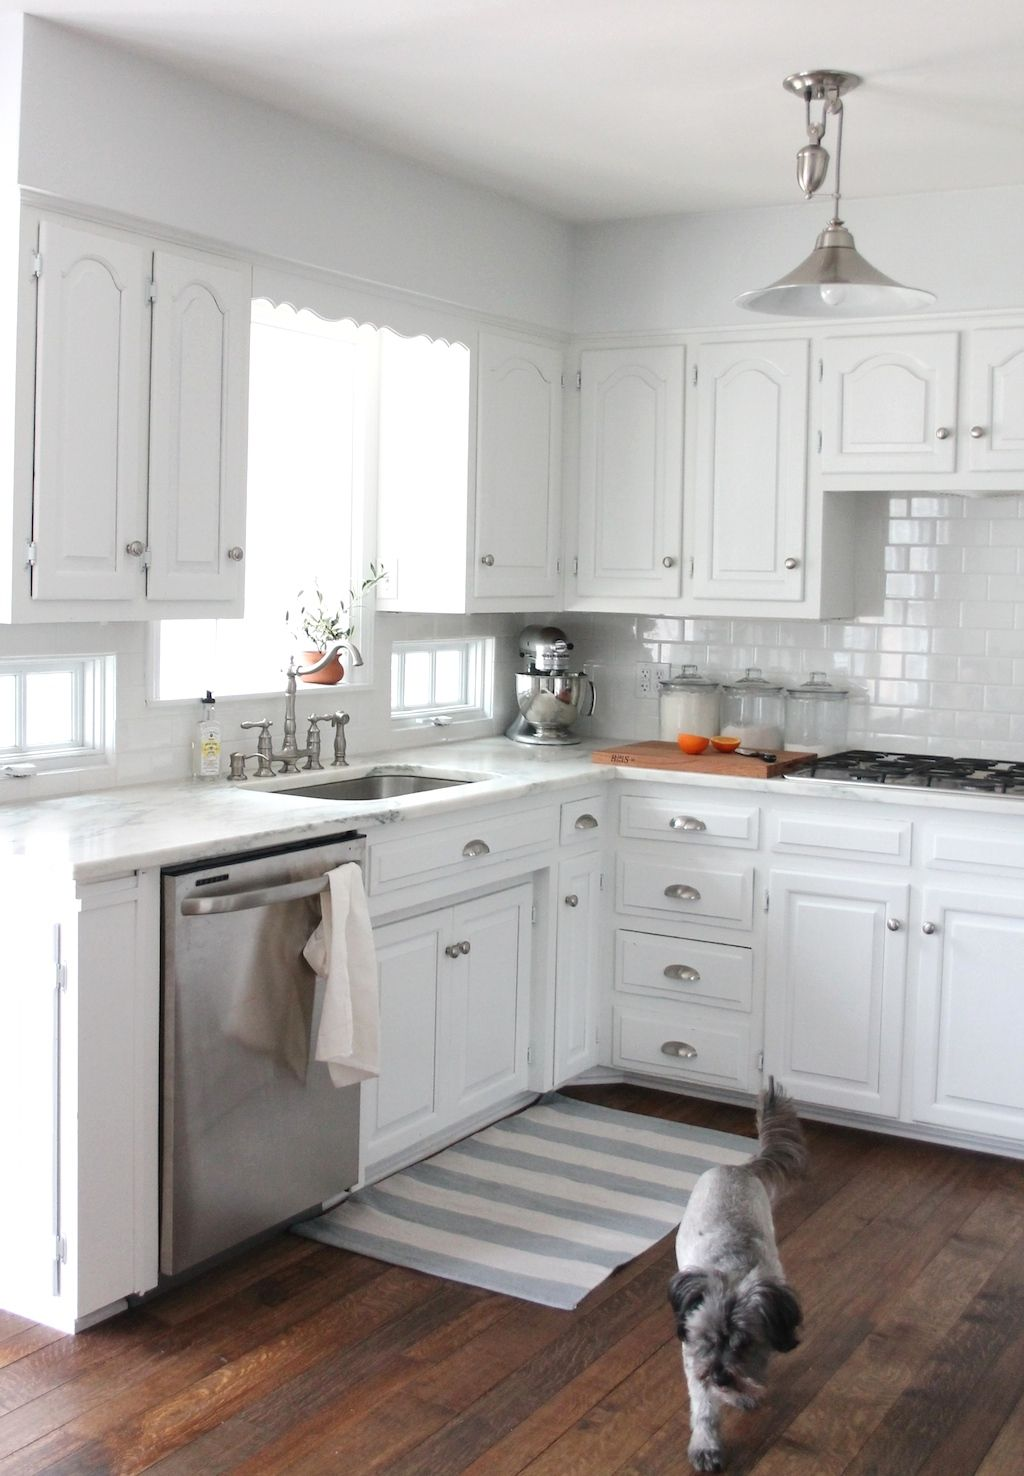 we did it our kitchen remodel easy diy projects and